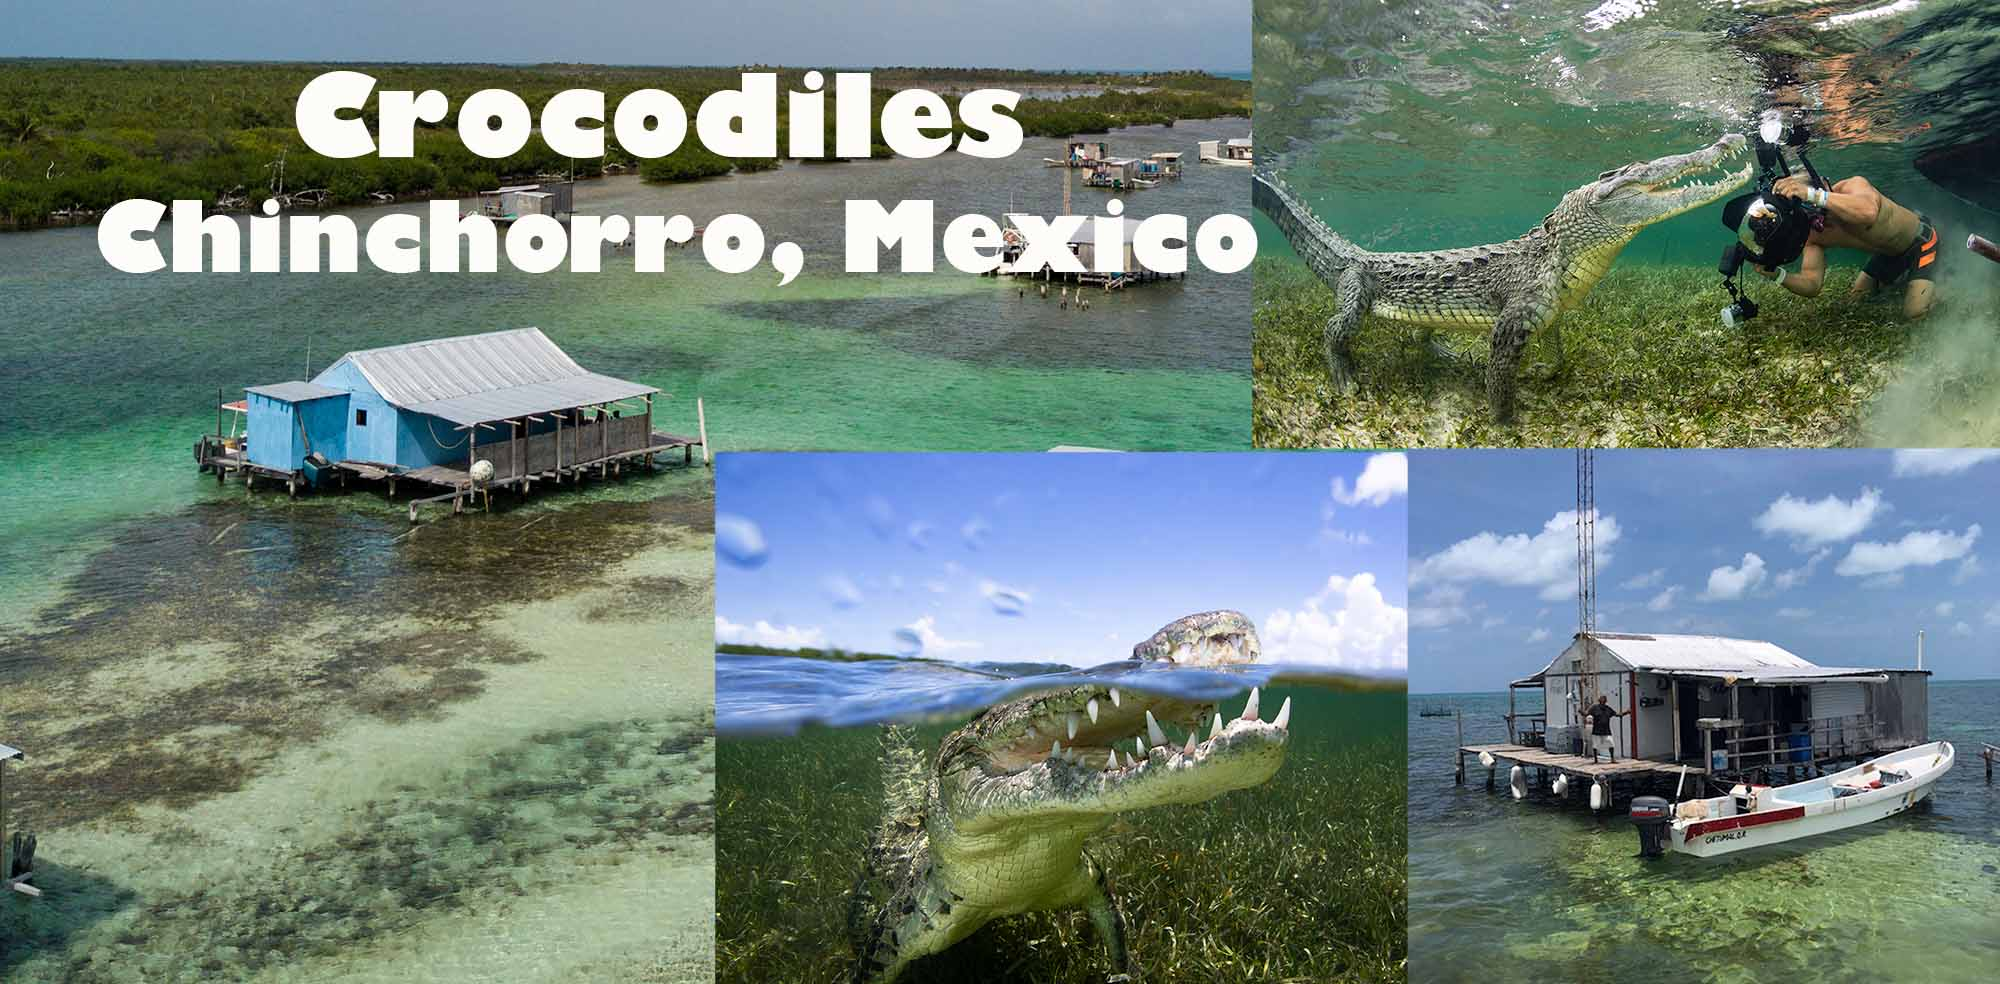 photographing American crocodiles in Chinchorro, Mexico